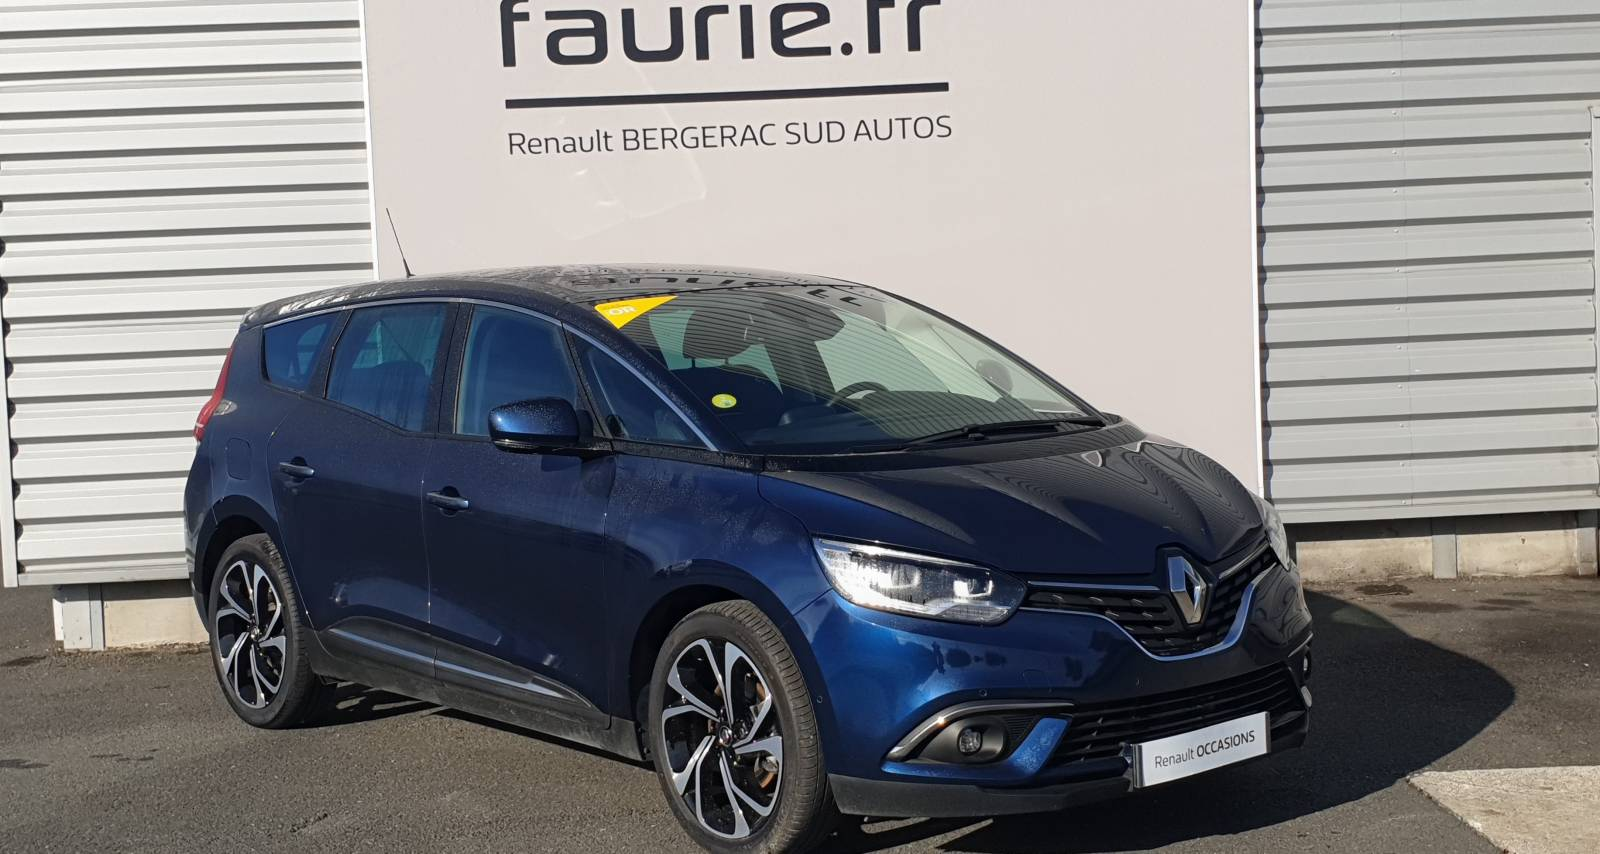 RENAULT Grand Scenic Blue dCi 150 - véhicule d'occasion - Site Internet Faurie - Renault - Faurie Auto Bergerac - 24100 - Bergerac - 3